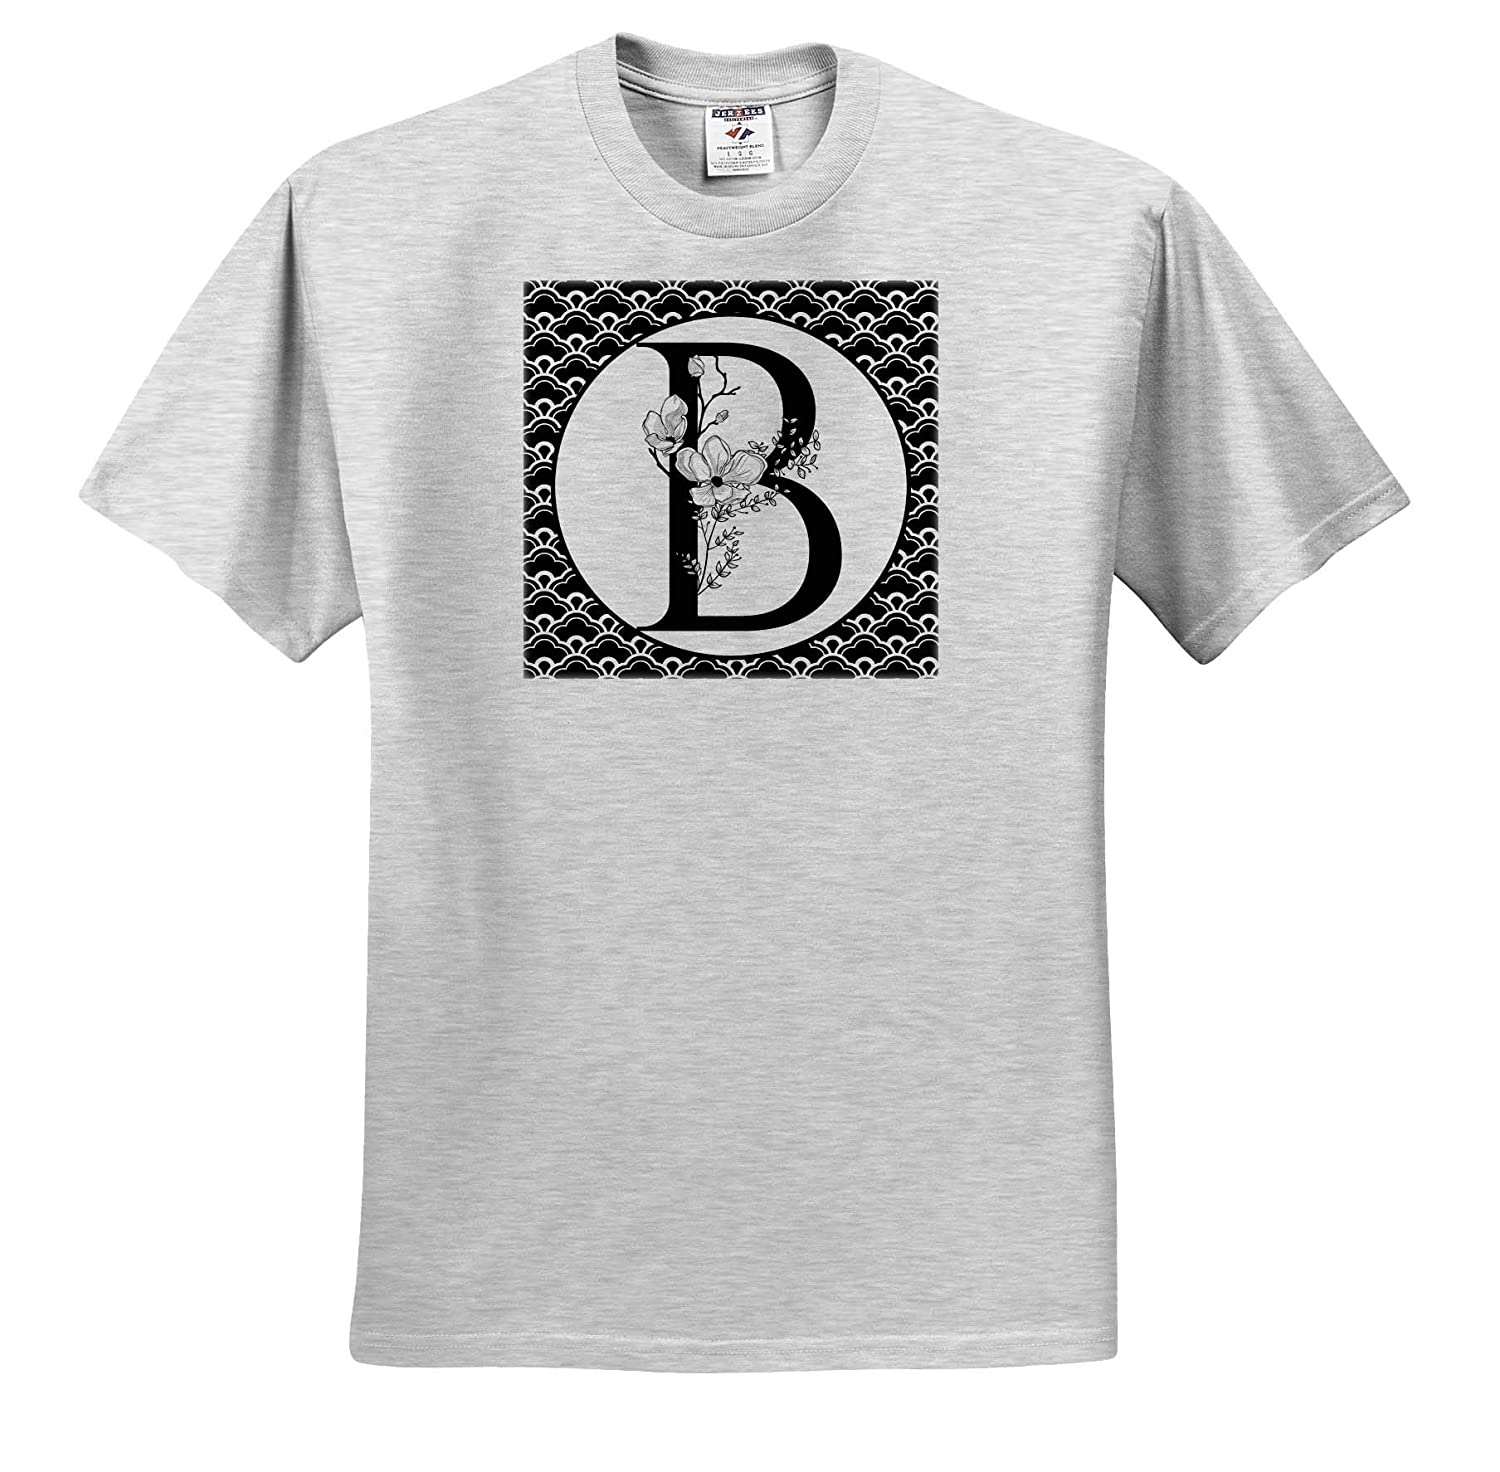 3dRose Anne Marie Baugh Adult T-Shirt XL Black and White Floral Monogram B On Fancy Scallops ts/_318029 Monograms